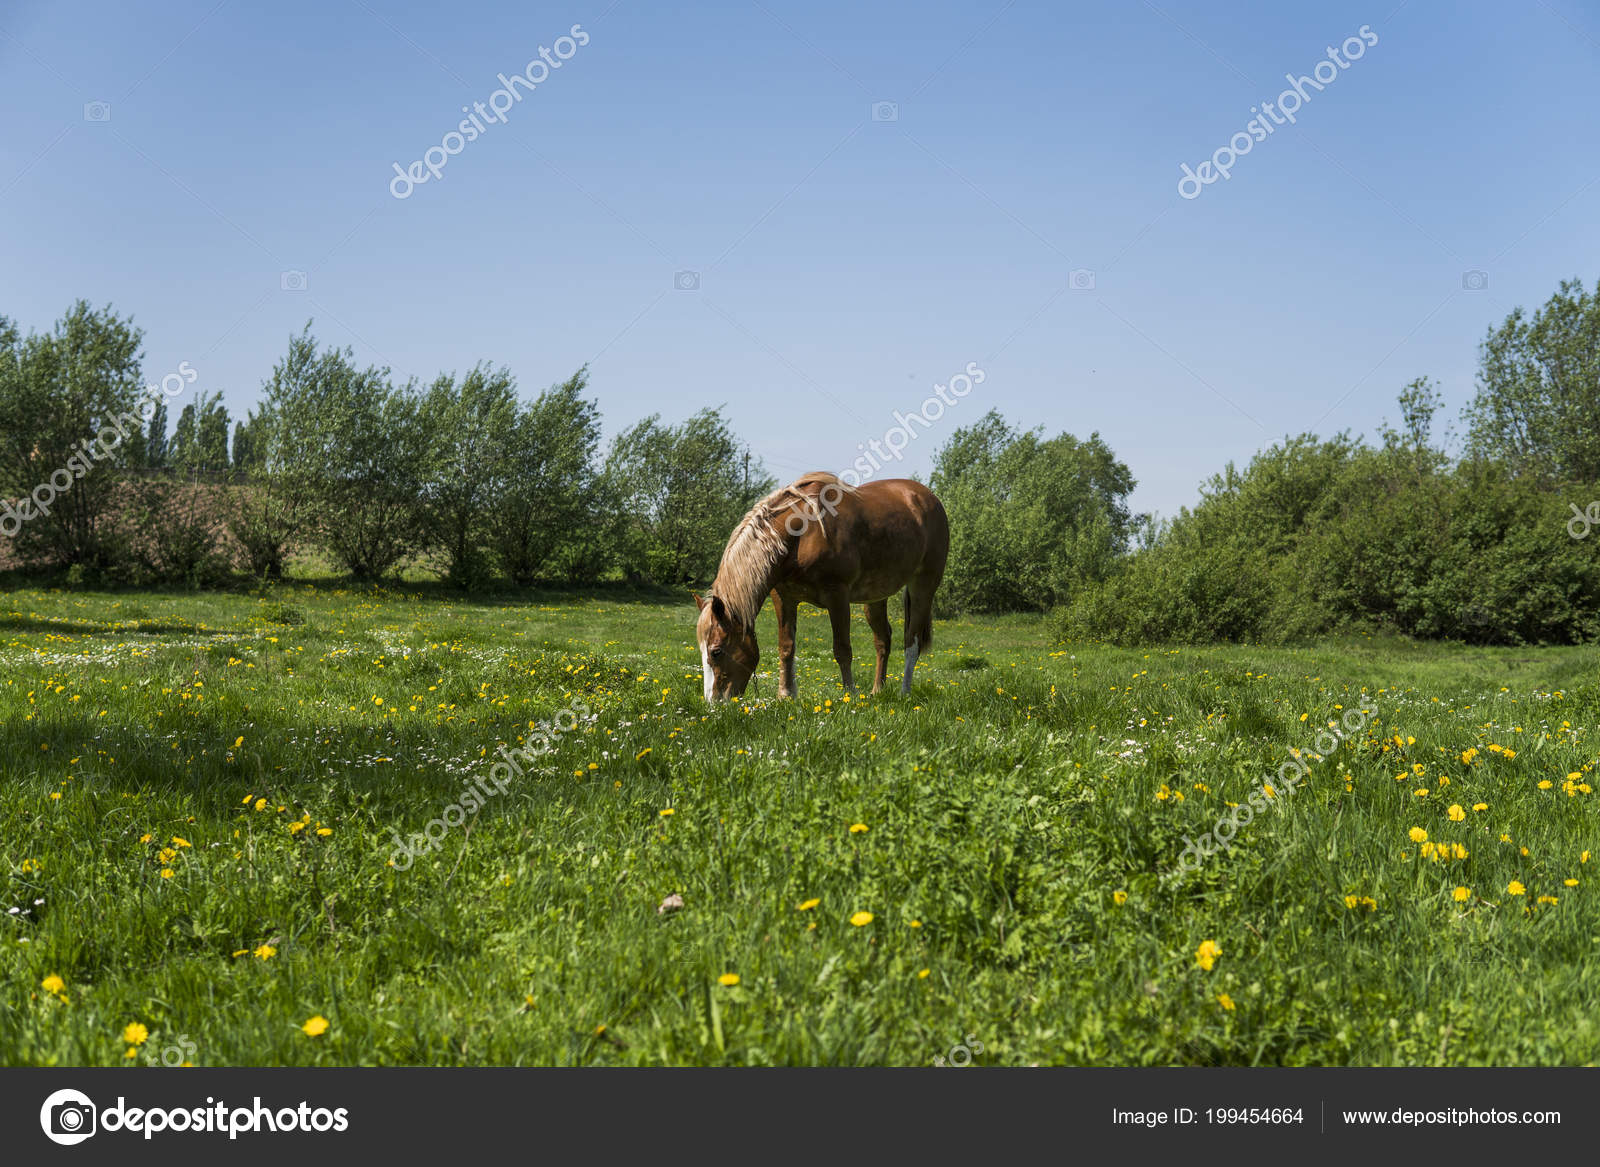 Alone Brown Horse On A Chain Grazing On Green Pasture With A Yellow